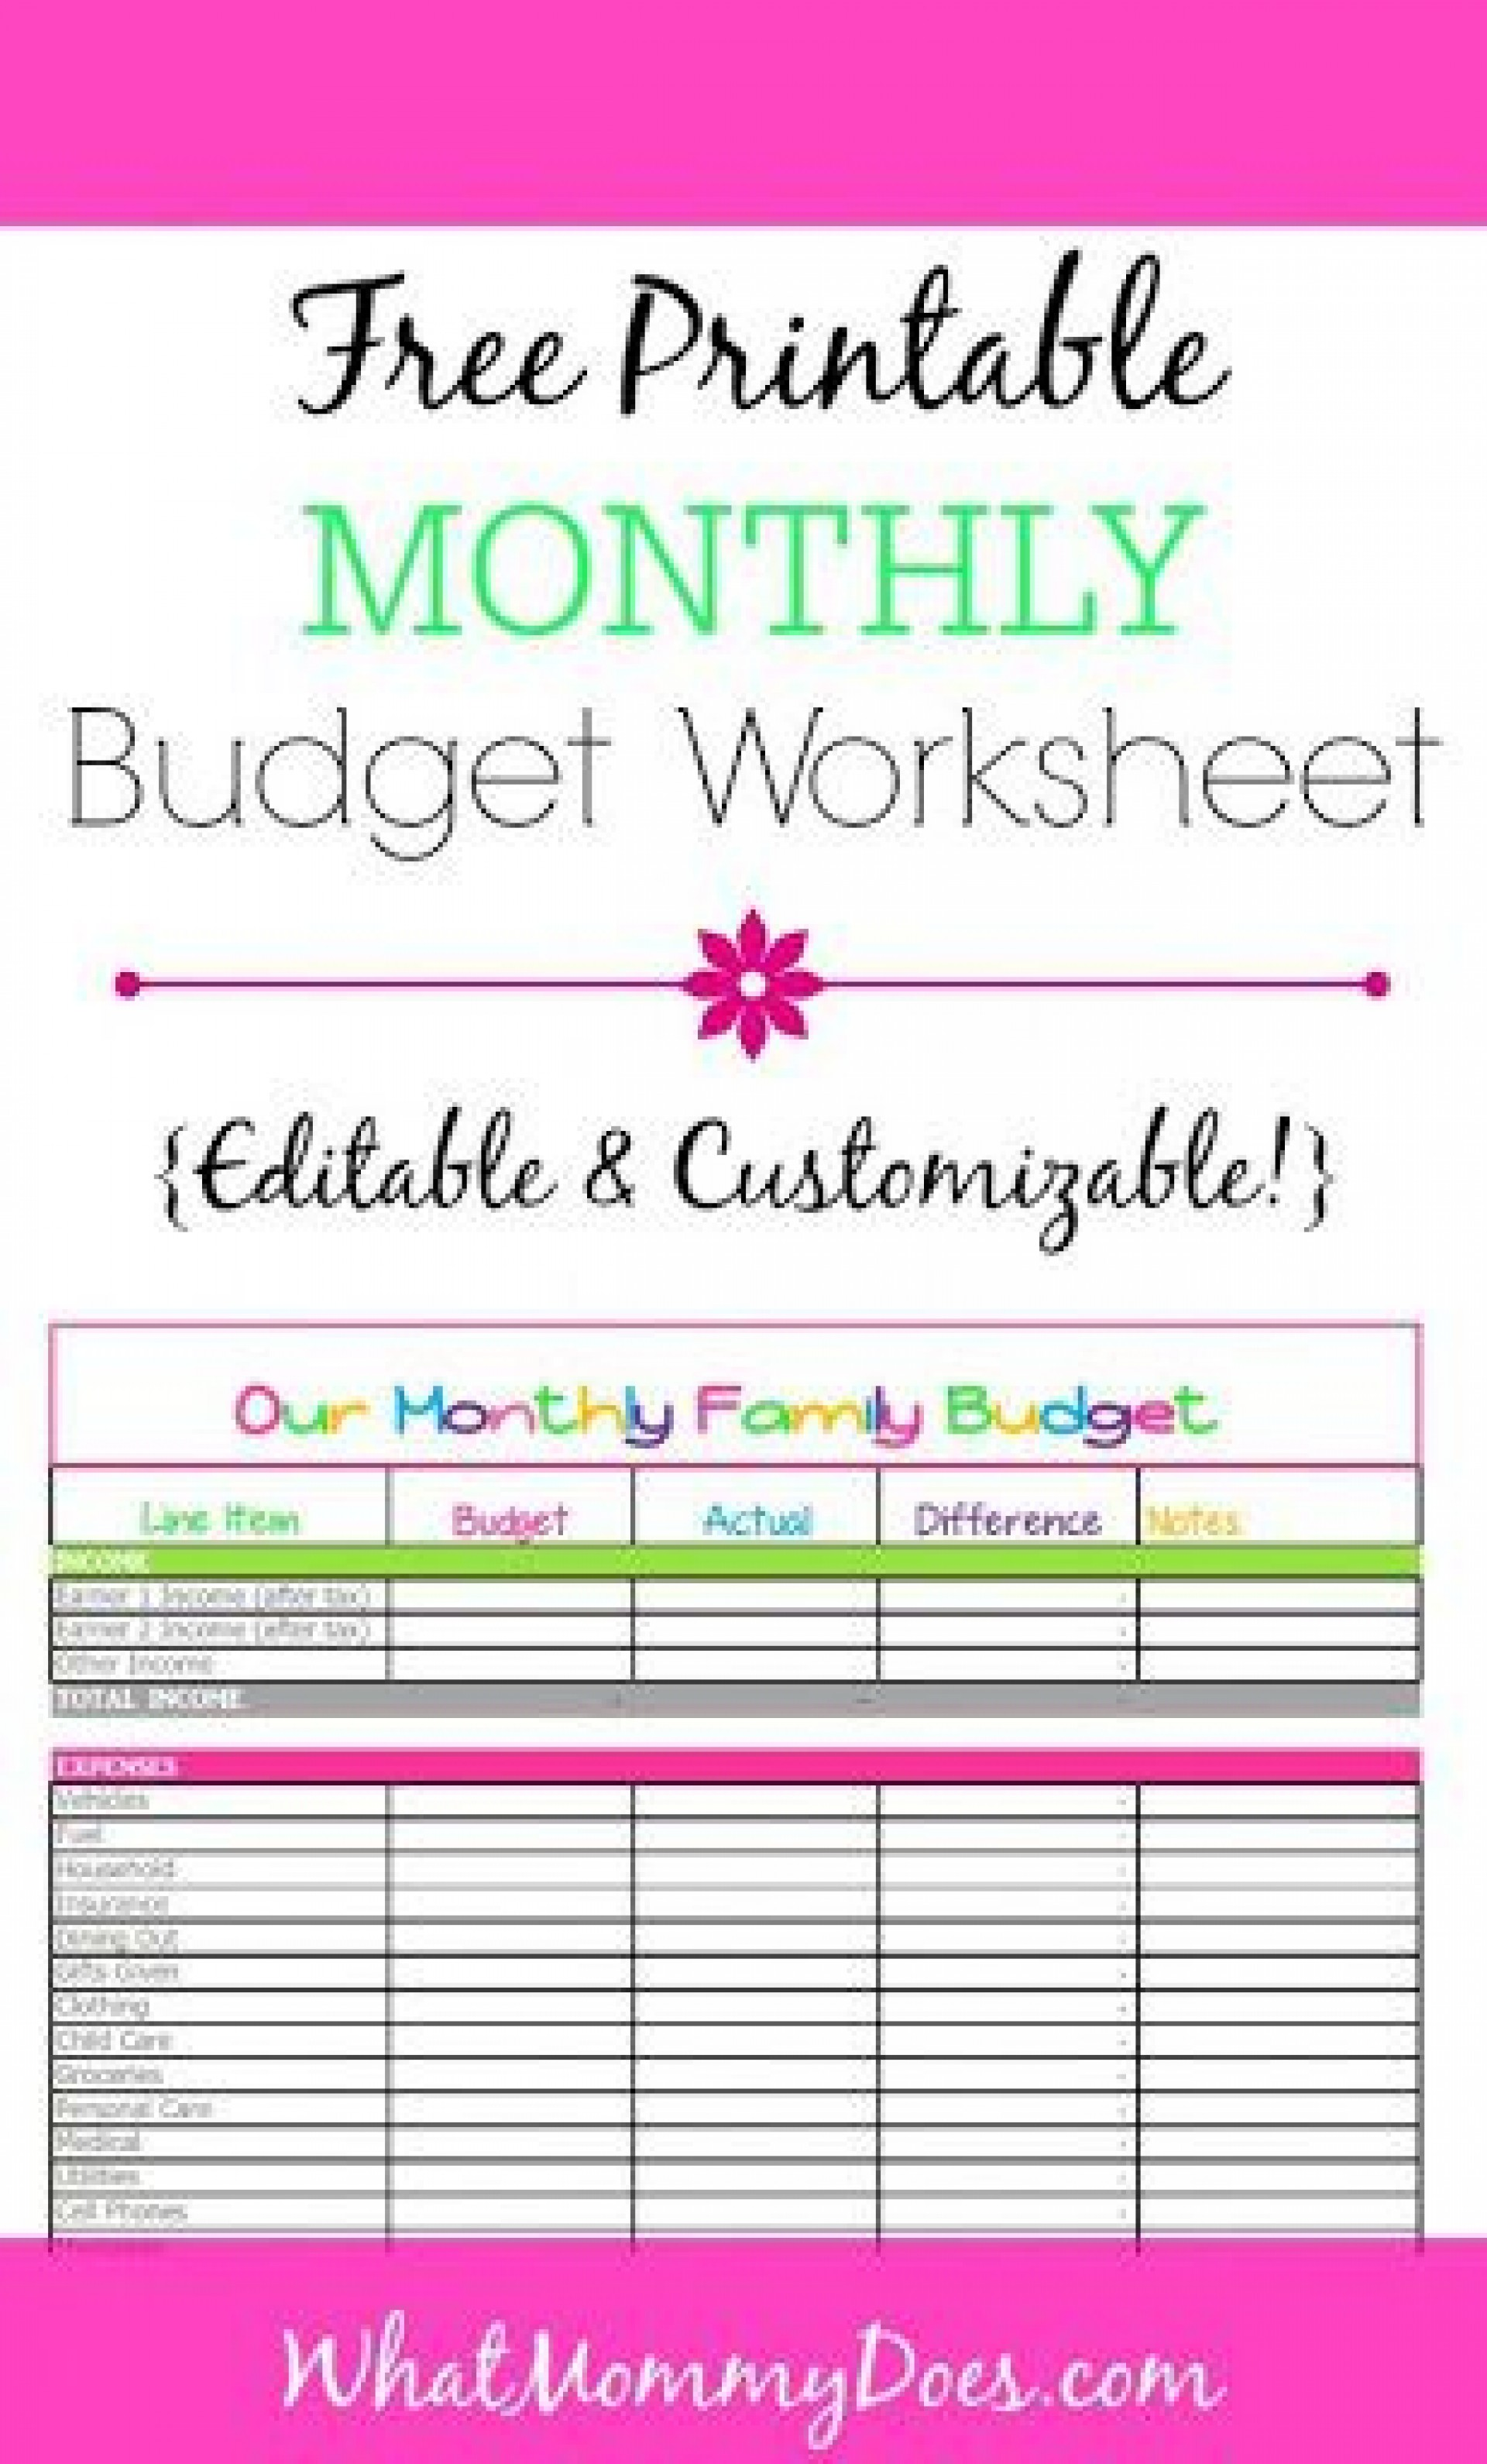 006 Imposing Monthly Household Budget Template Free Uk Sample 1920